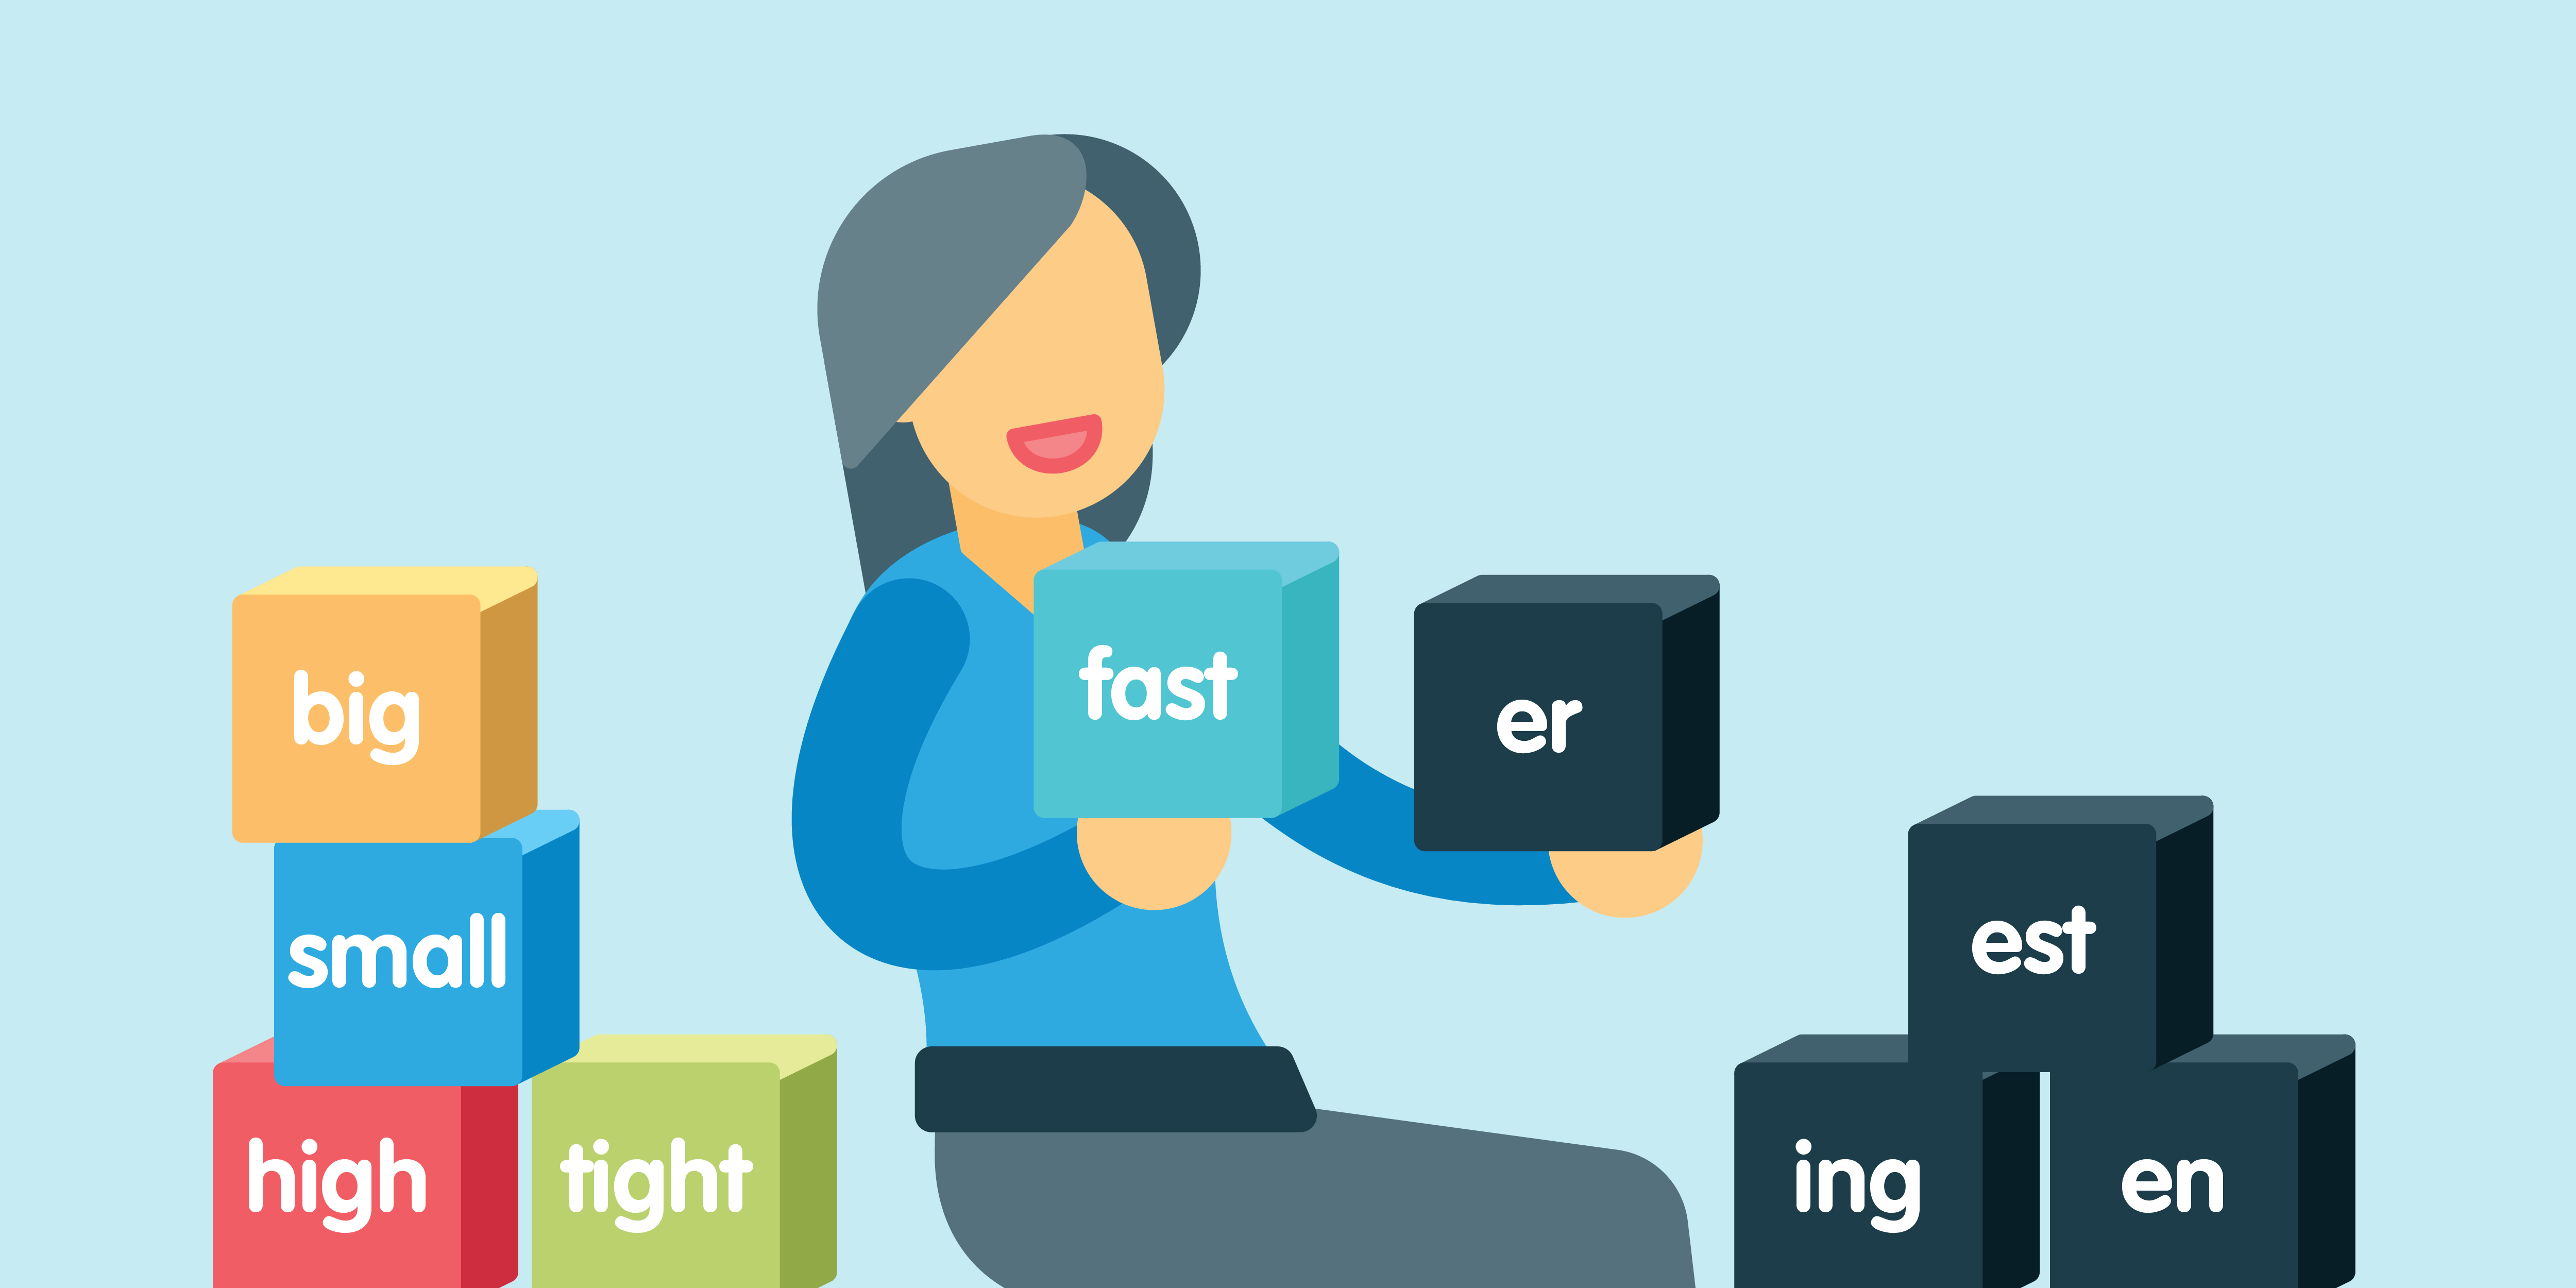 Learntalk | Suffixes: Word Endings That Change the Meaning